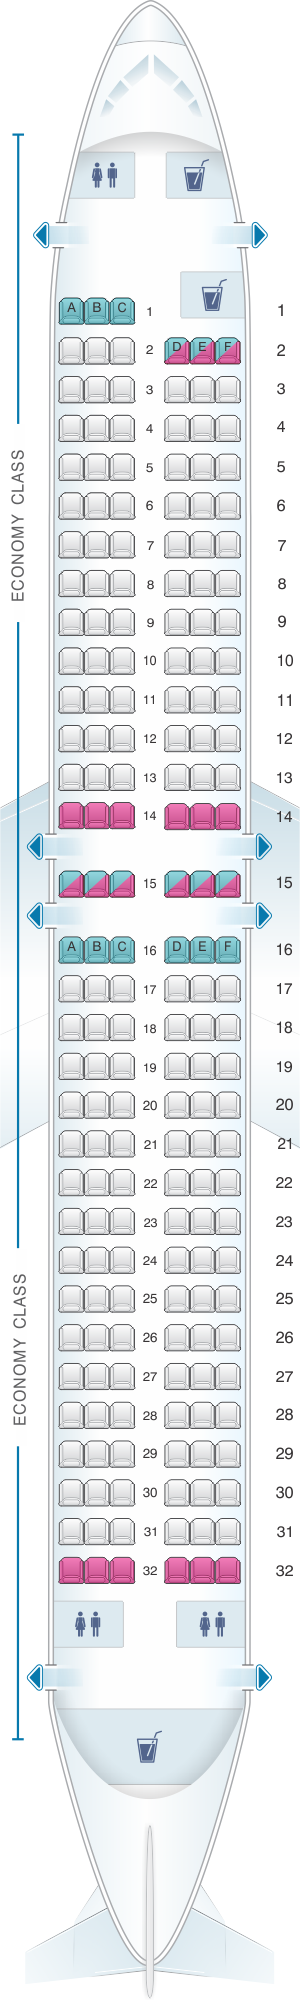 Seat map for SpiceJet Boeing B737 800